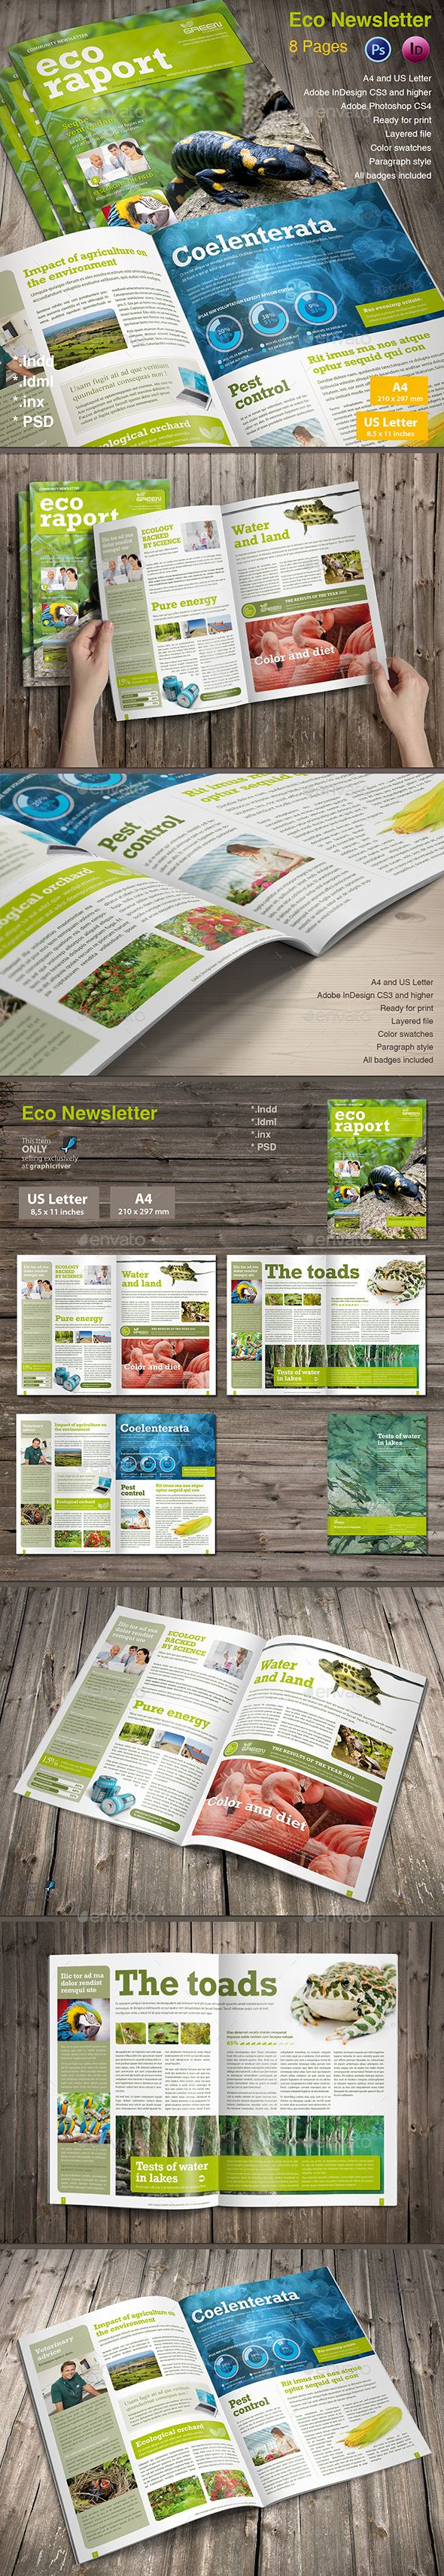 Eco Newsletter - Newsletters Print Templates Download here : https://graphicriver.net/item/eco-newsletter/13184990?s_rank=78&ref=Al-fatih